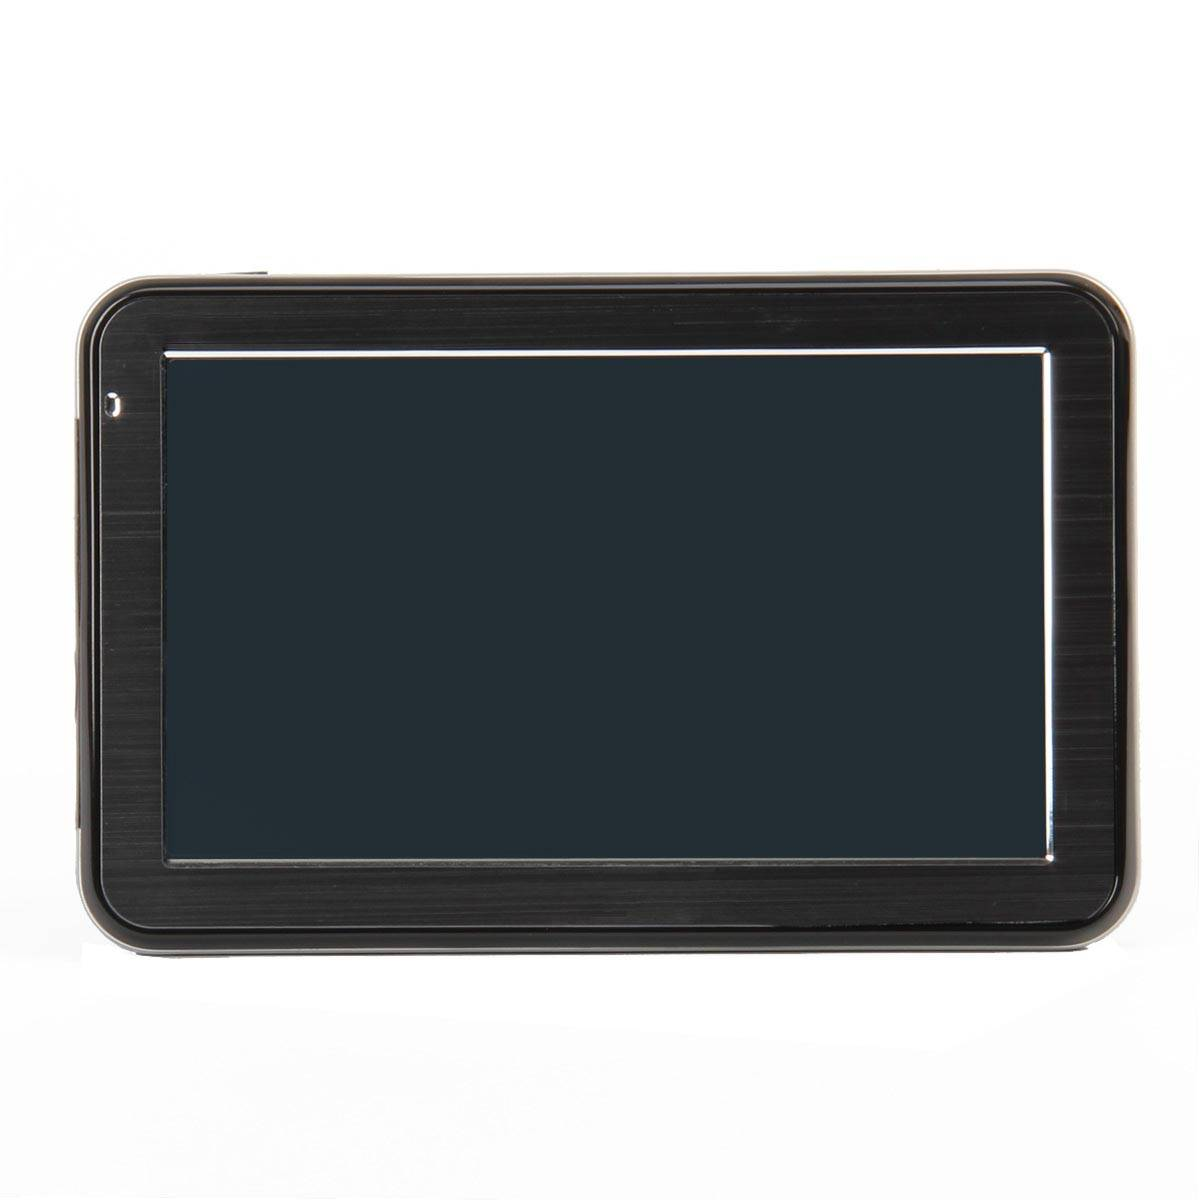 4.3inch gps navigaton bluetooth av-in optional